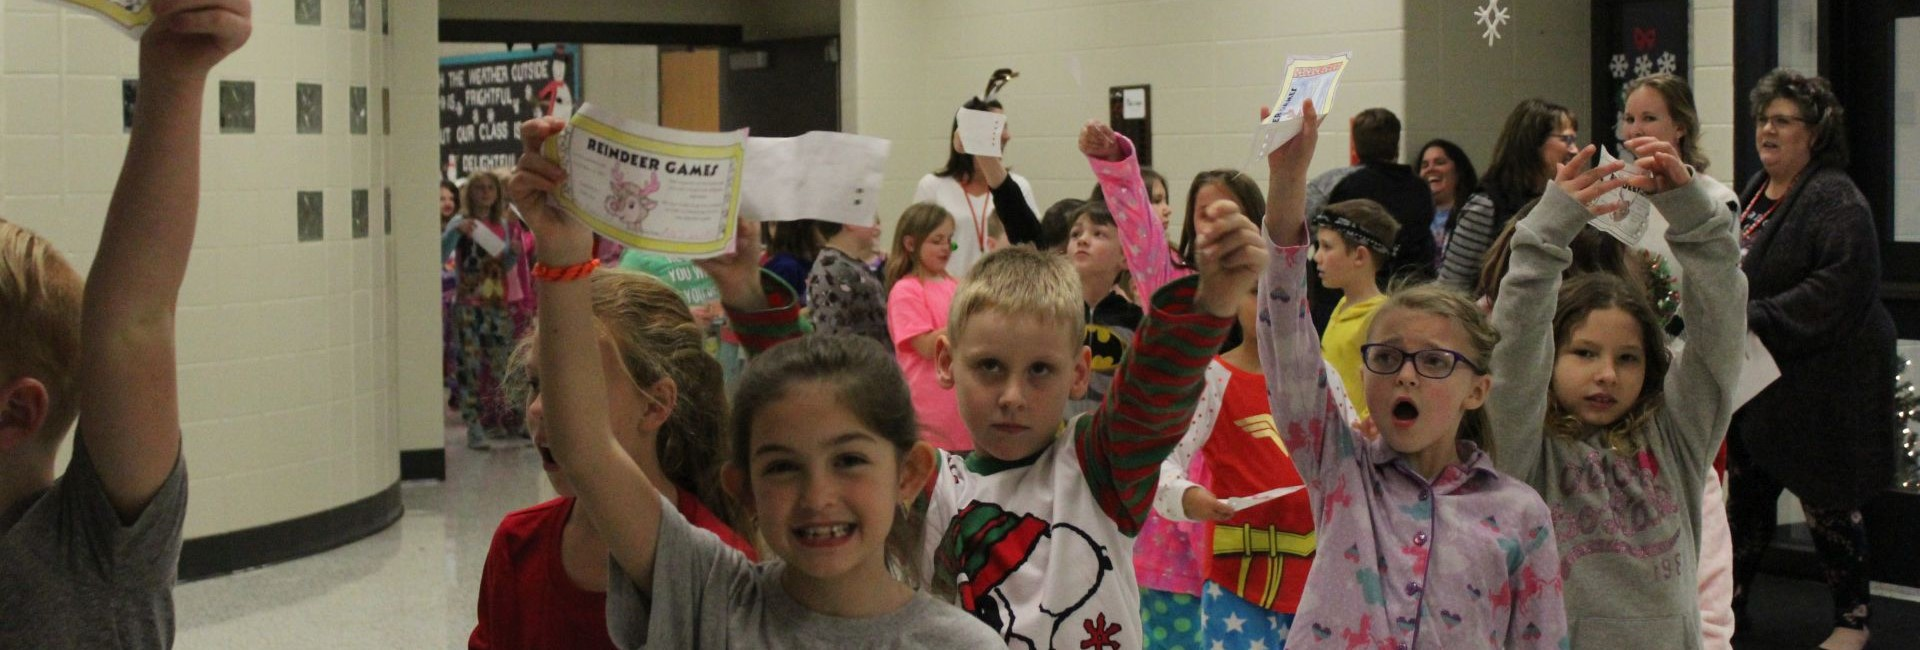 WES students showing their Reindeer Game Tickets